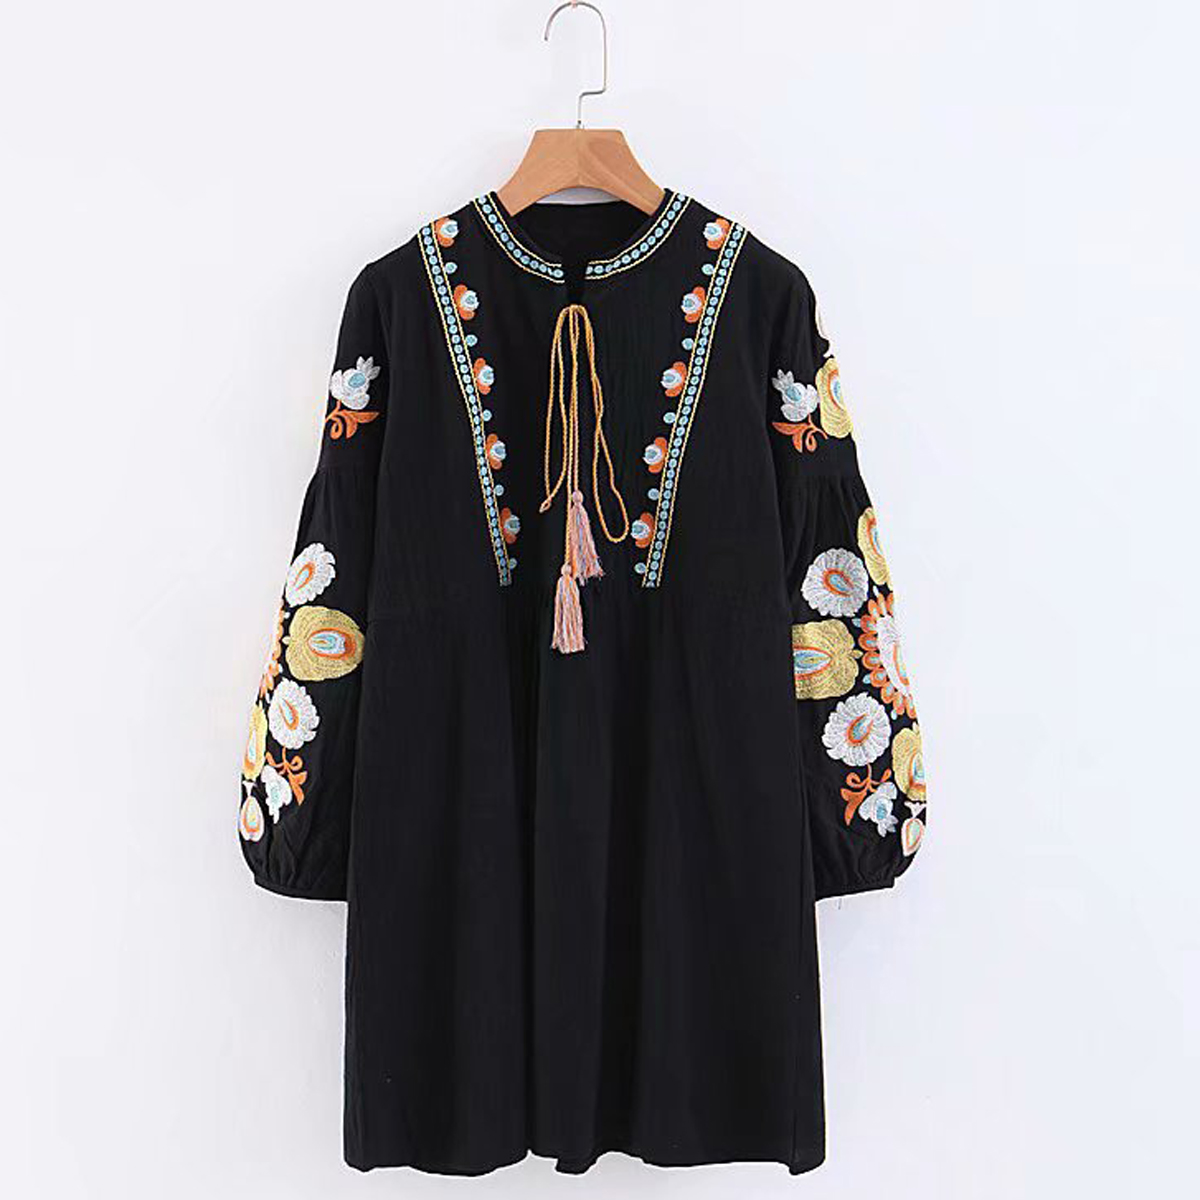 7e4bc4be5ae9f Jastie Lace up O-Neck Women Dress Boho Floral Embroidered Dresses Long  Sleeve Loose Autumn Dress 2018 Hippie chic Mini Dresses